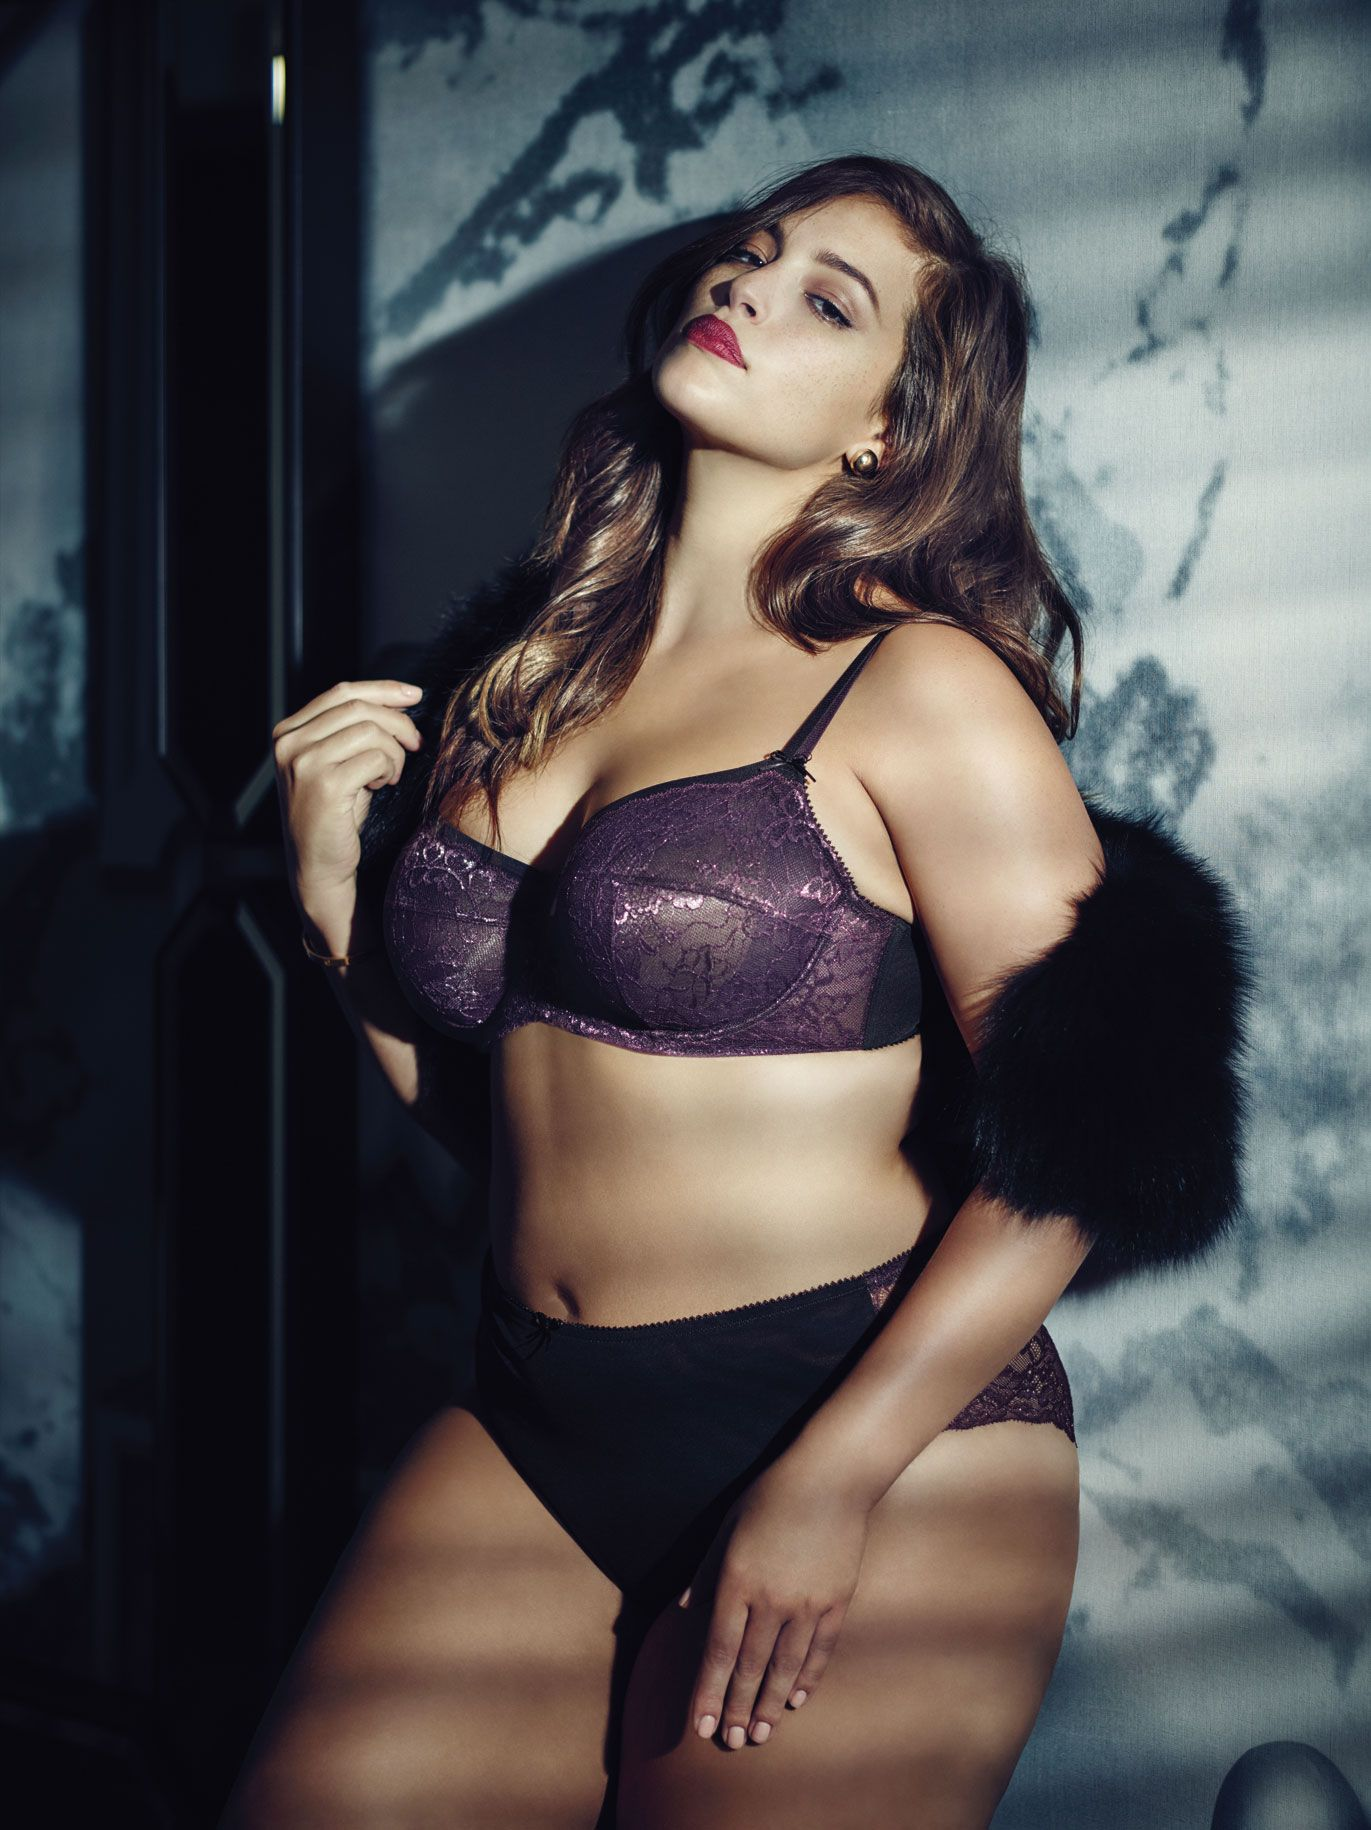 ed2f0c5960674 Ashley Graham Lingerie lovely in lace unlined bra   matching panties. Plus- size lingerie from Addition Elle